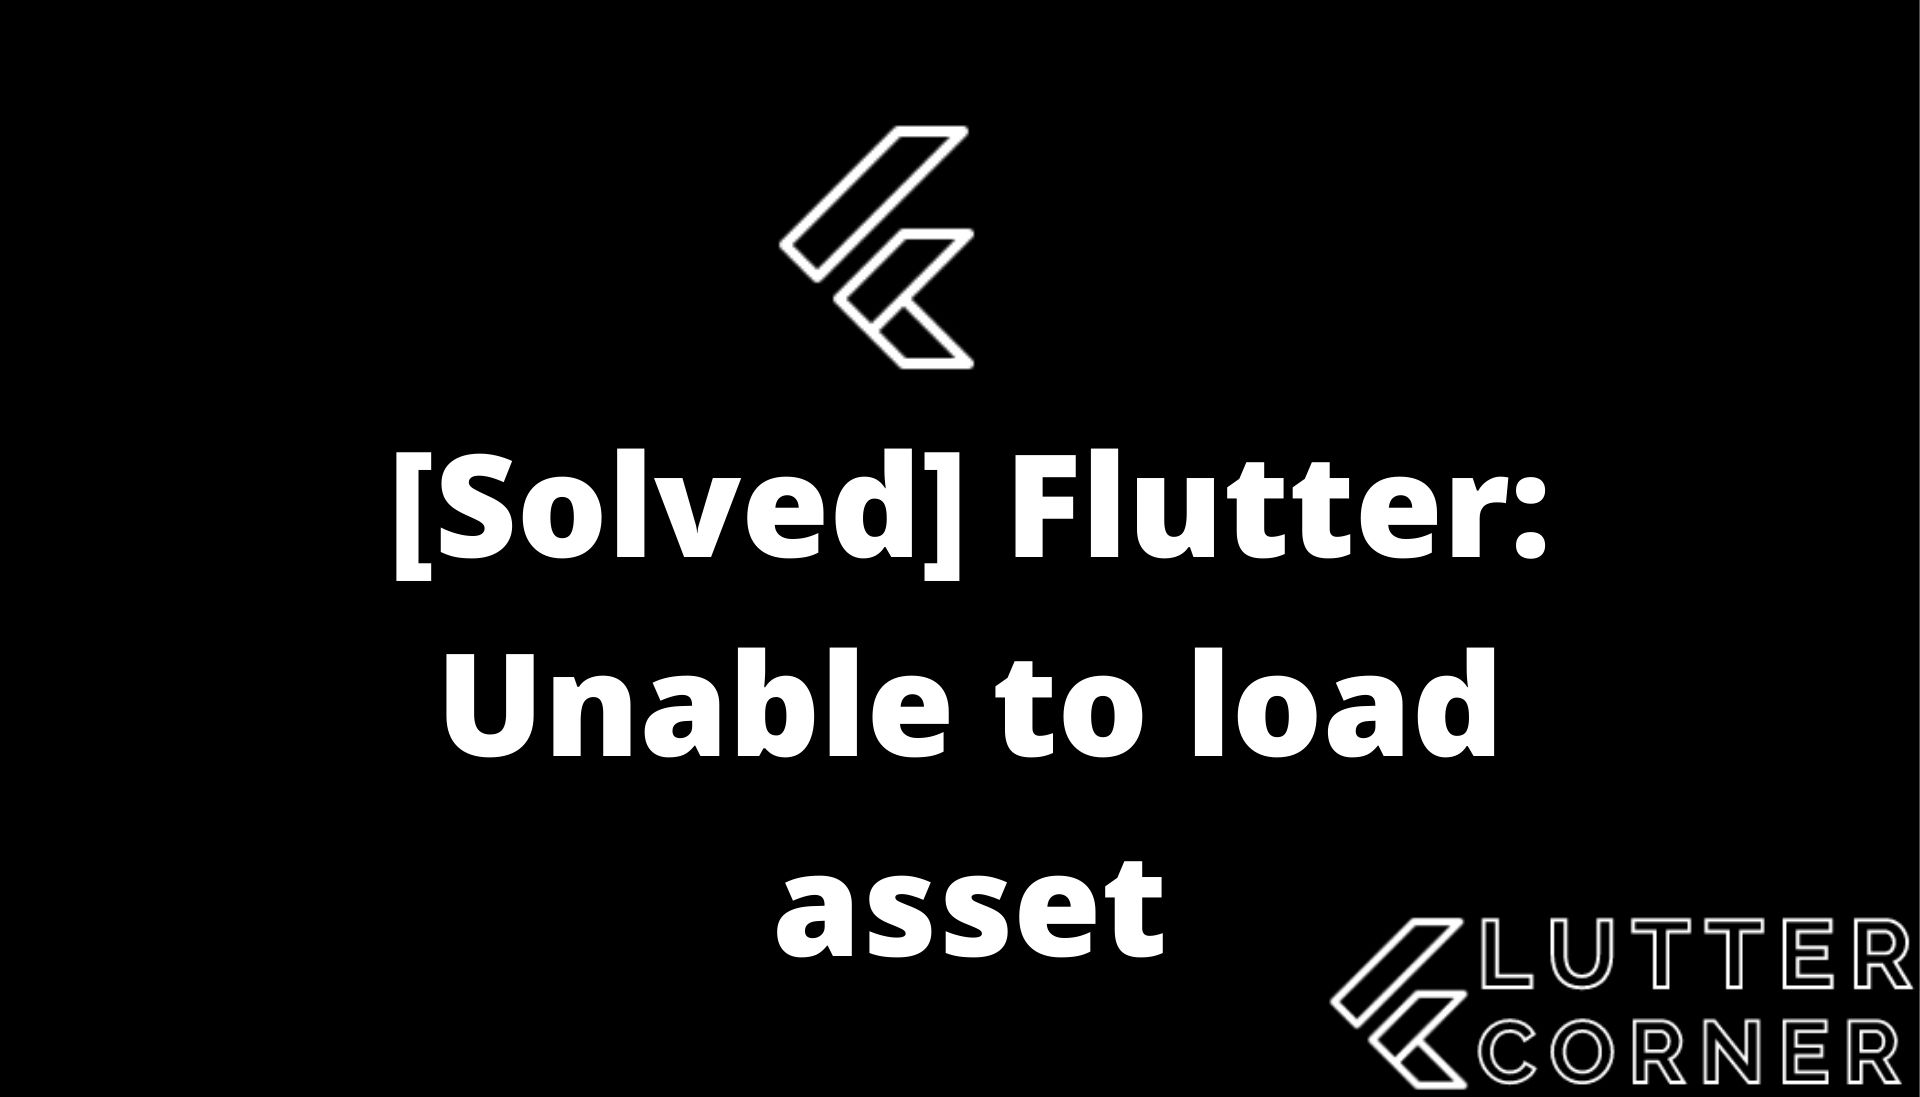 unable to load asset, Unable to load asset Flutter, load asset in flutter, Unable to load asset in Flutter